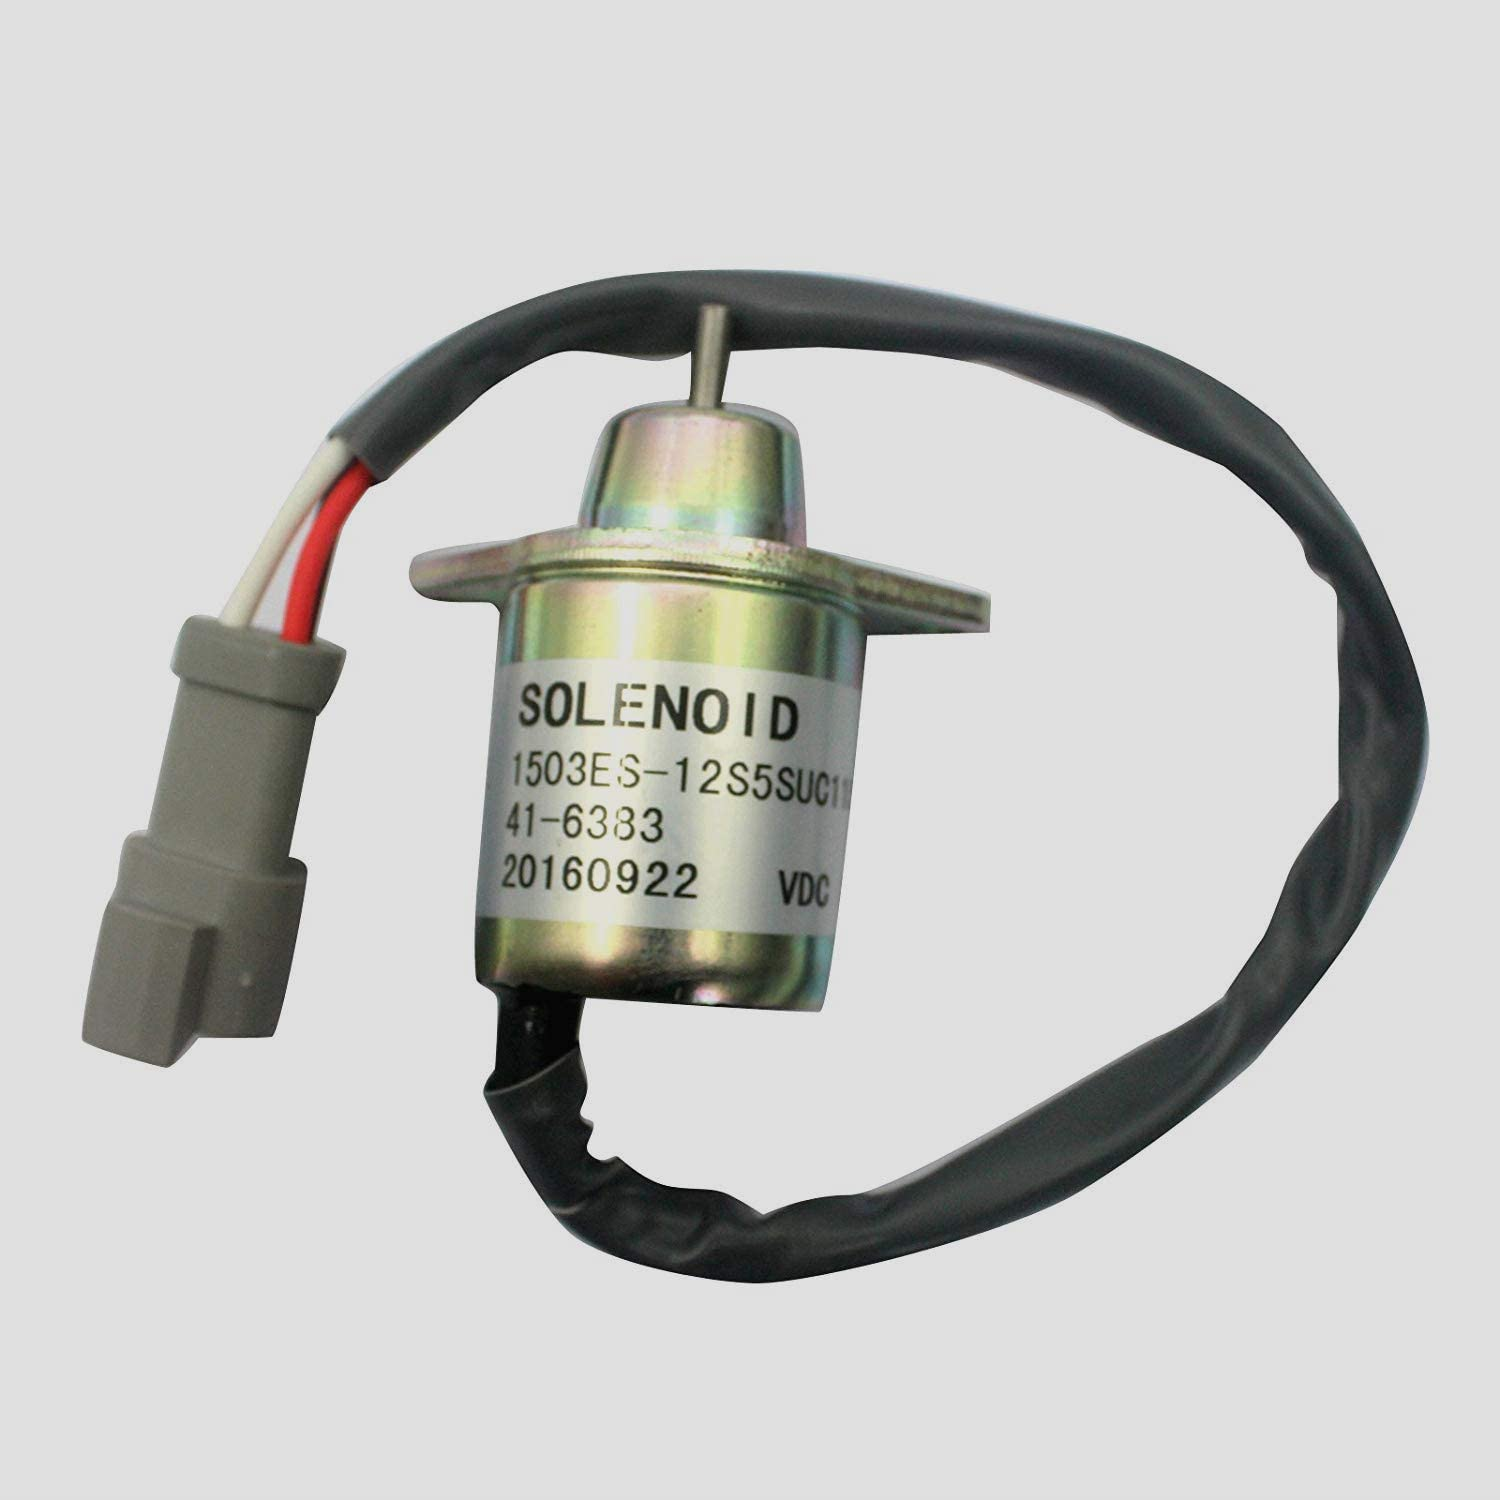 41-6383 1503ES-12S5SUC11S Stop Solenoid SA-4564 SA-4920 DC12V Fuel Shutdown Solenoid Cut Off Solenoid for for Thermo King Engine Excavator Aftermarket Parts